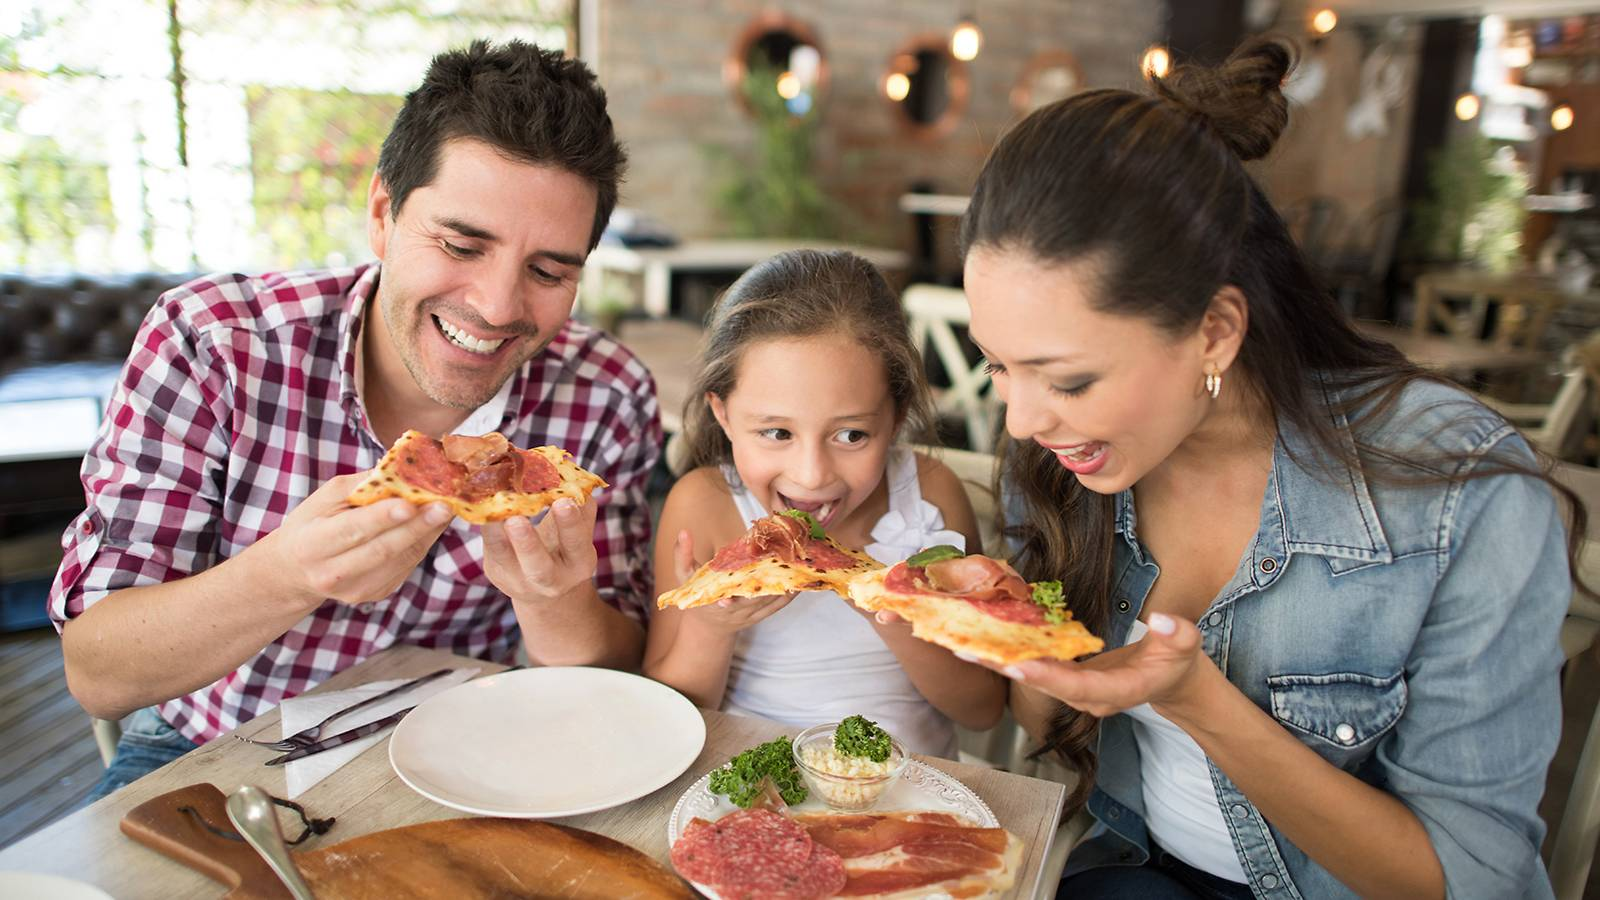 Kids-Restaurants-that-let-kids-eat-free-MAIN (1)